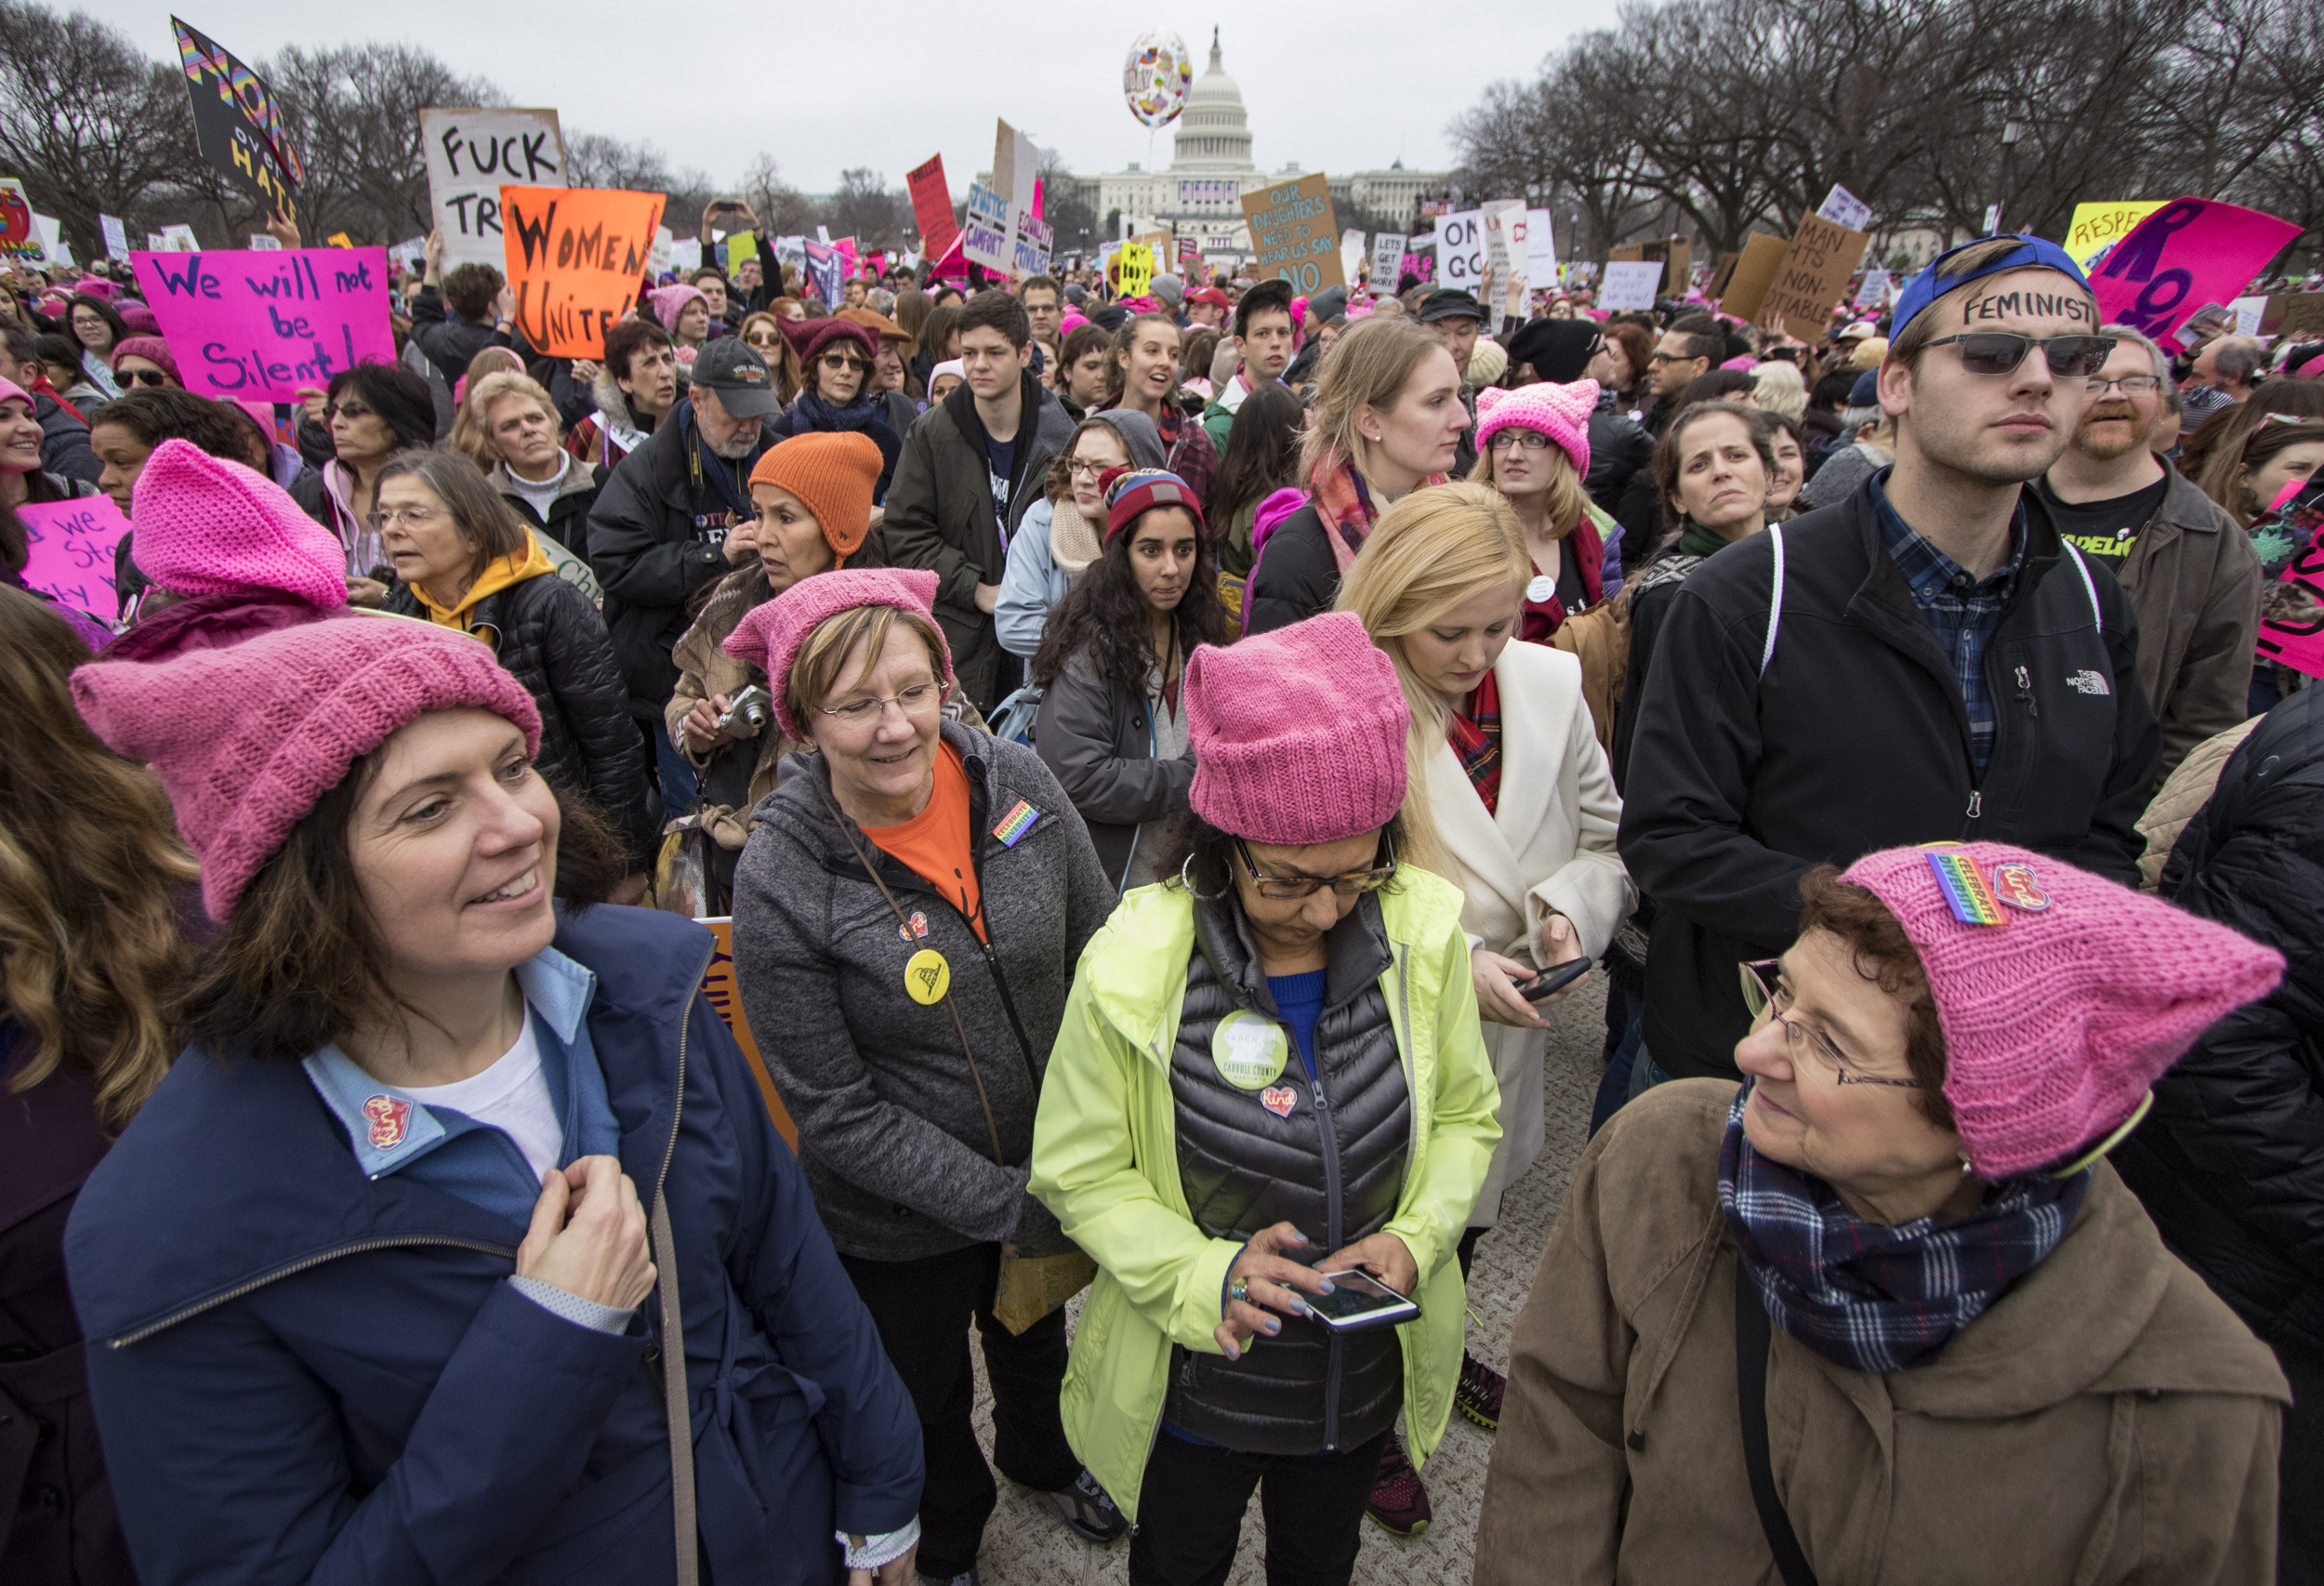 From left to right: Together We Will Carroll County chapter members Karen Jones, Carol Sterner, Tina Adornato, and Celeste Zerner join the Women's March on Washington on the National Mall on Saturday, Jan. 21, 2016.